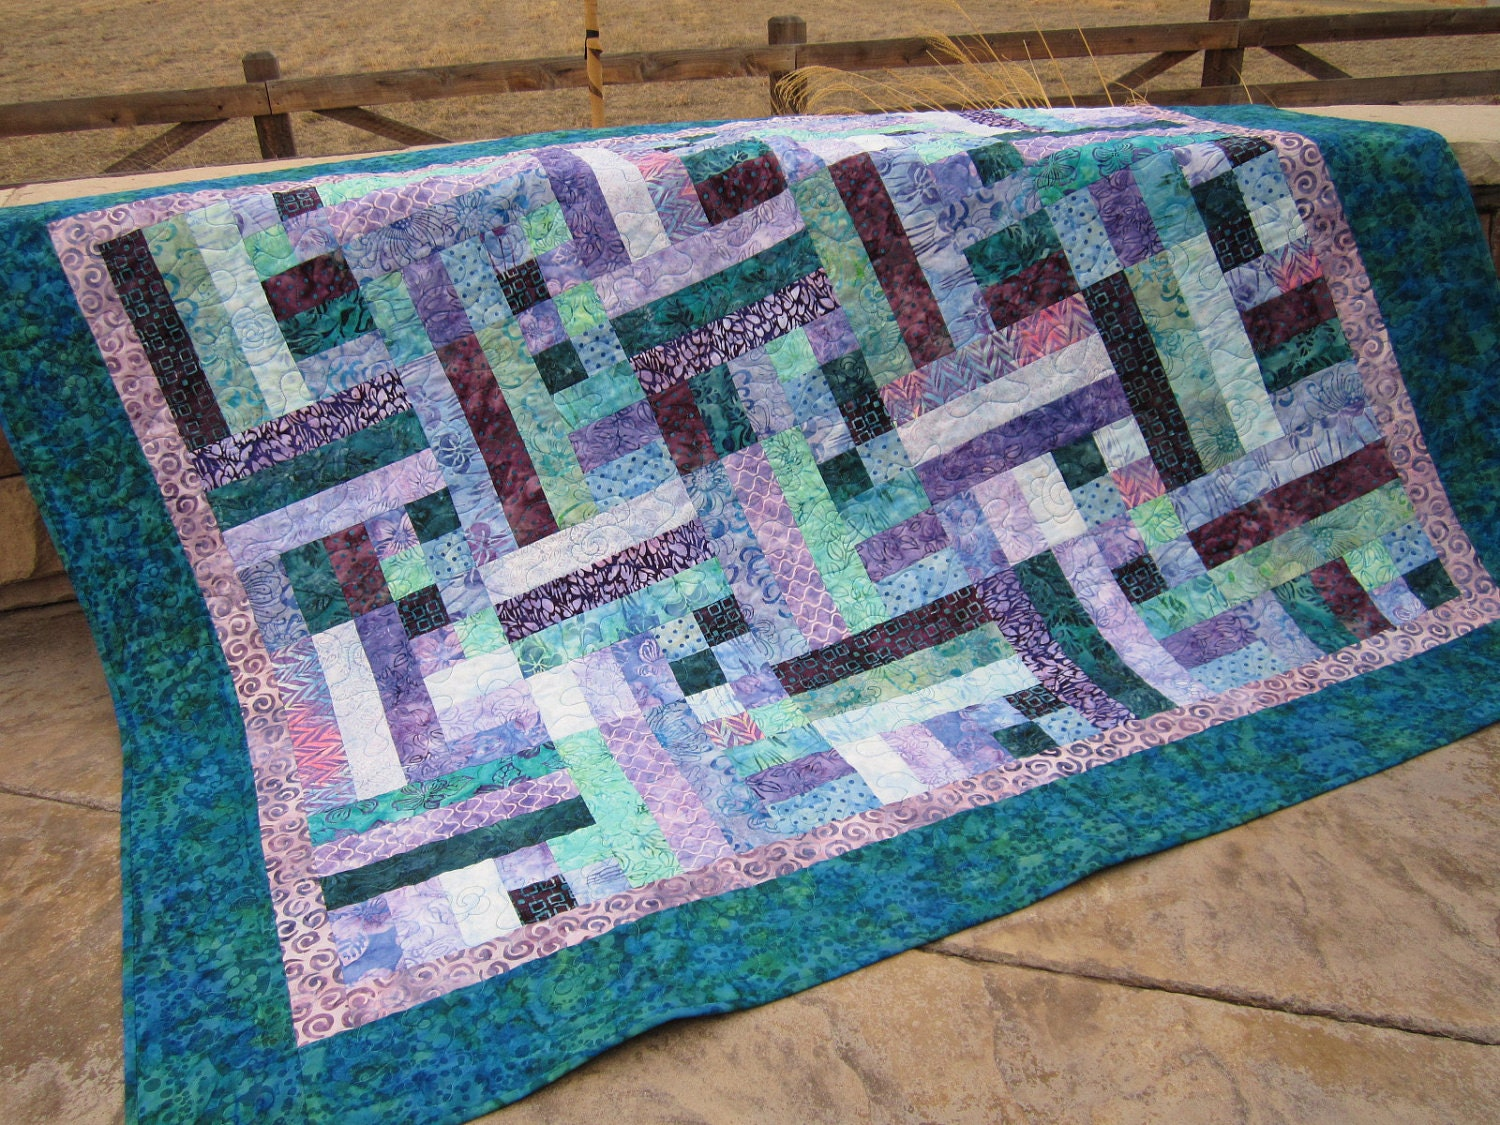 Handmade Quilt Teal and Purple Batik Quilted Throw : ilfullxfull319373497 from www.etsy.com size 1500 x 1125 jpeg 617kB